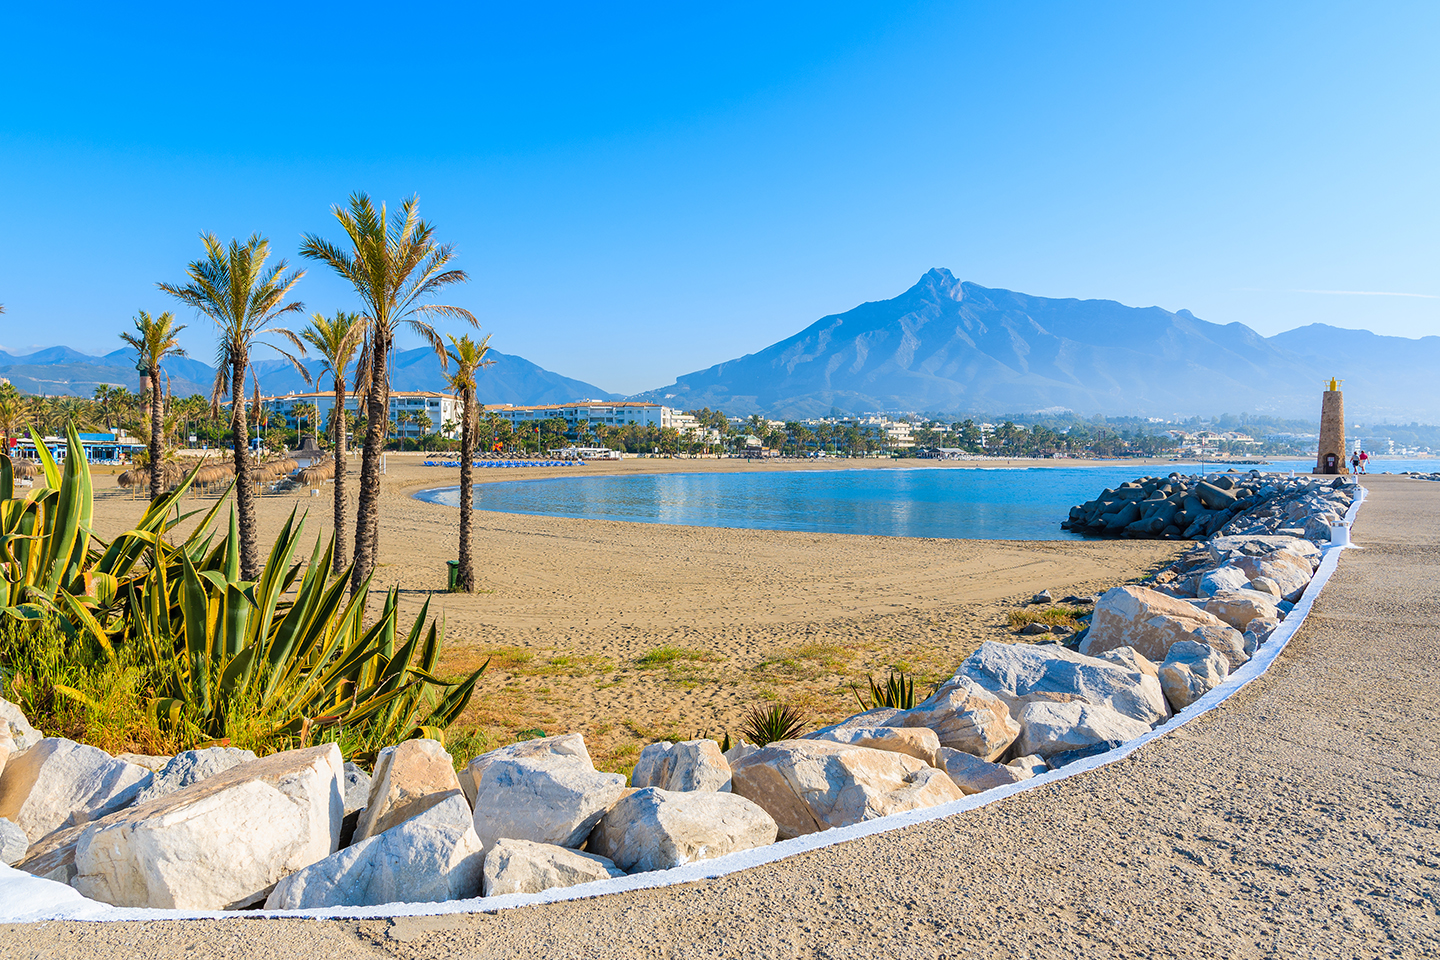 A beach in Marbella, Spain, with palm trees on the left, a walkway on the right, and a mountain in the distance.